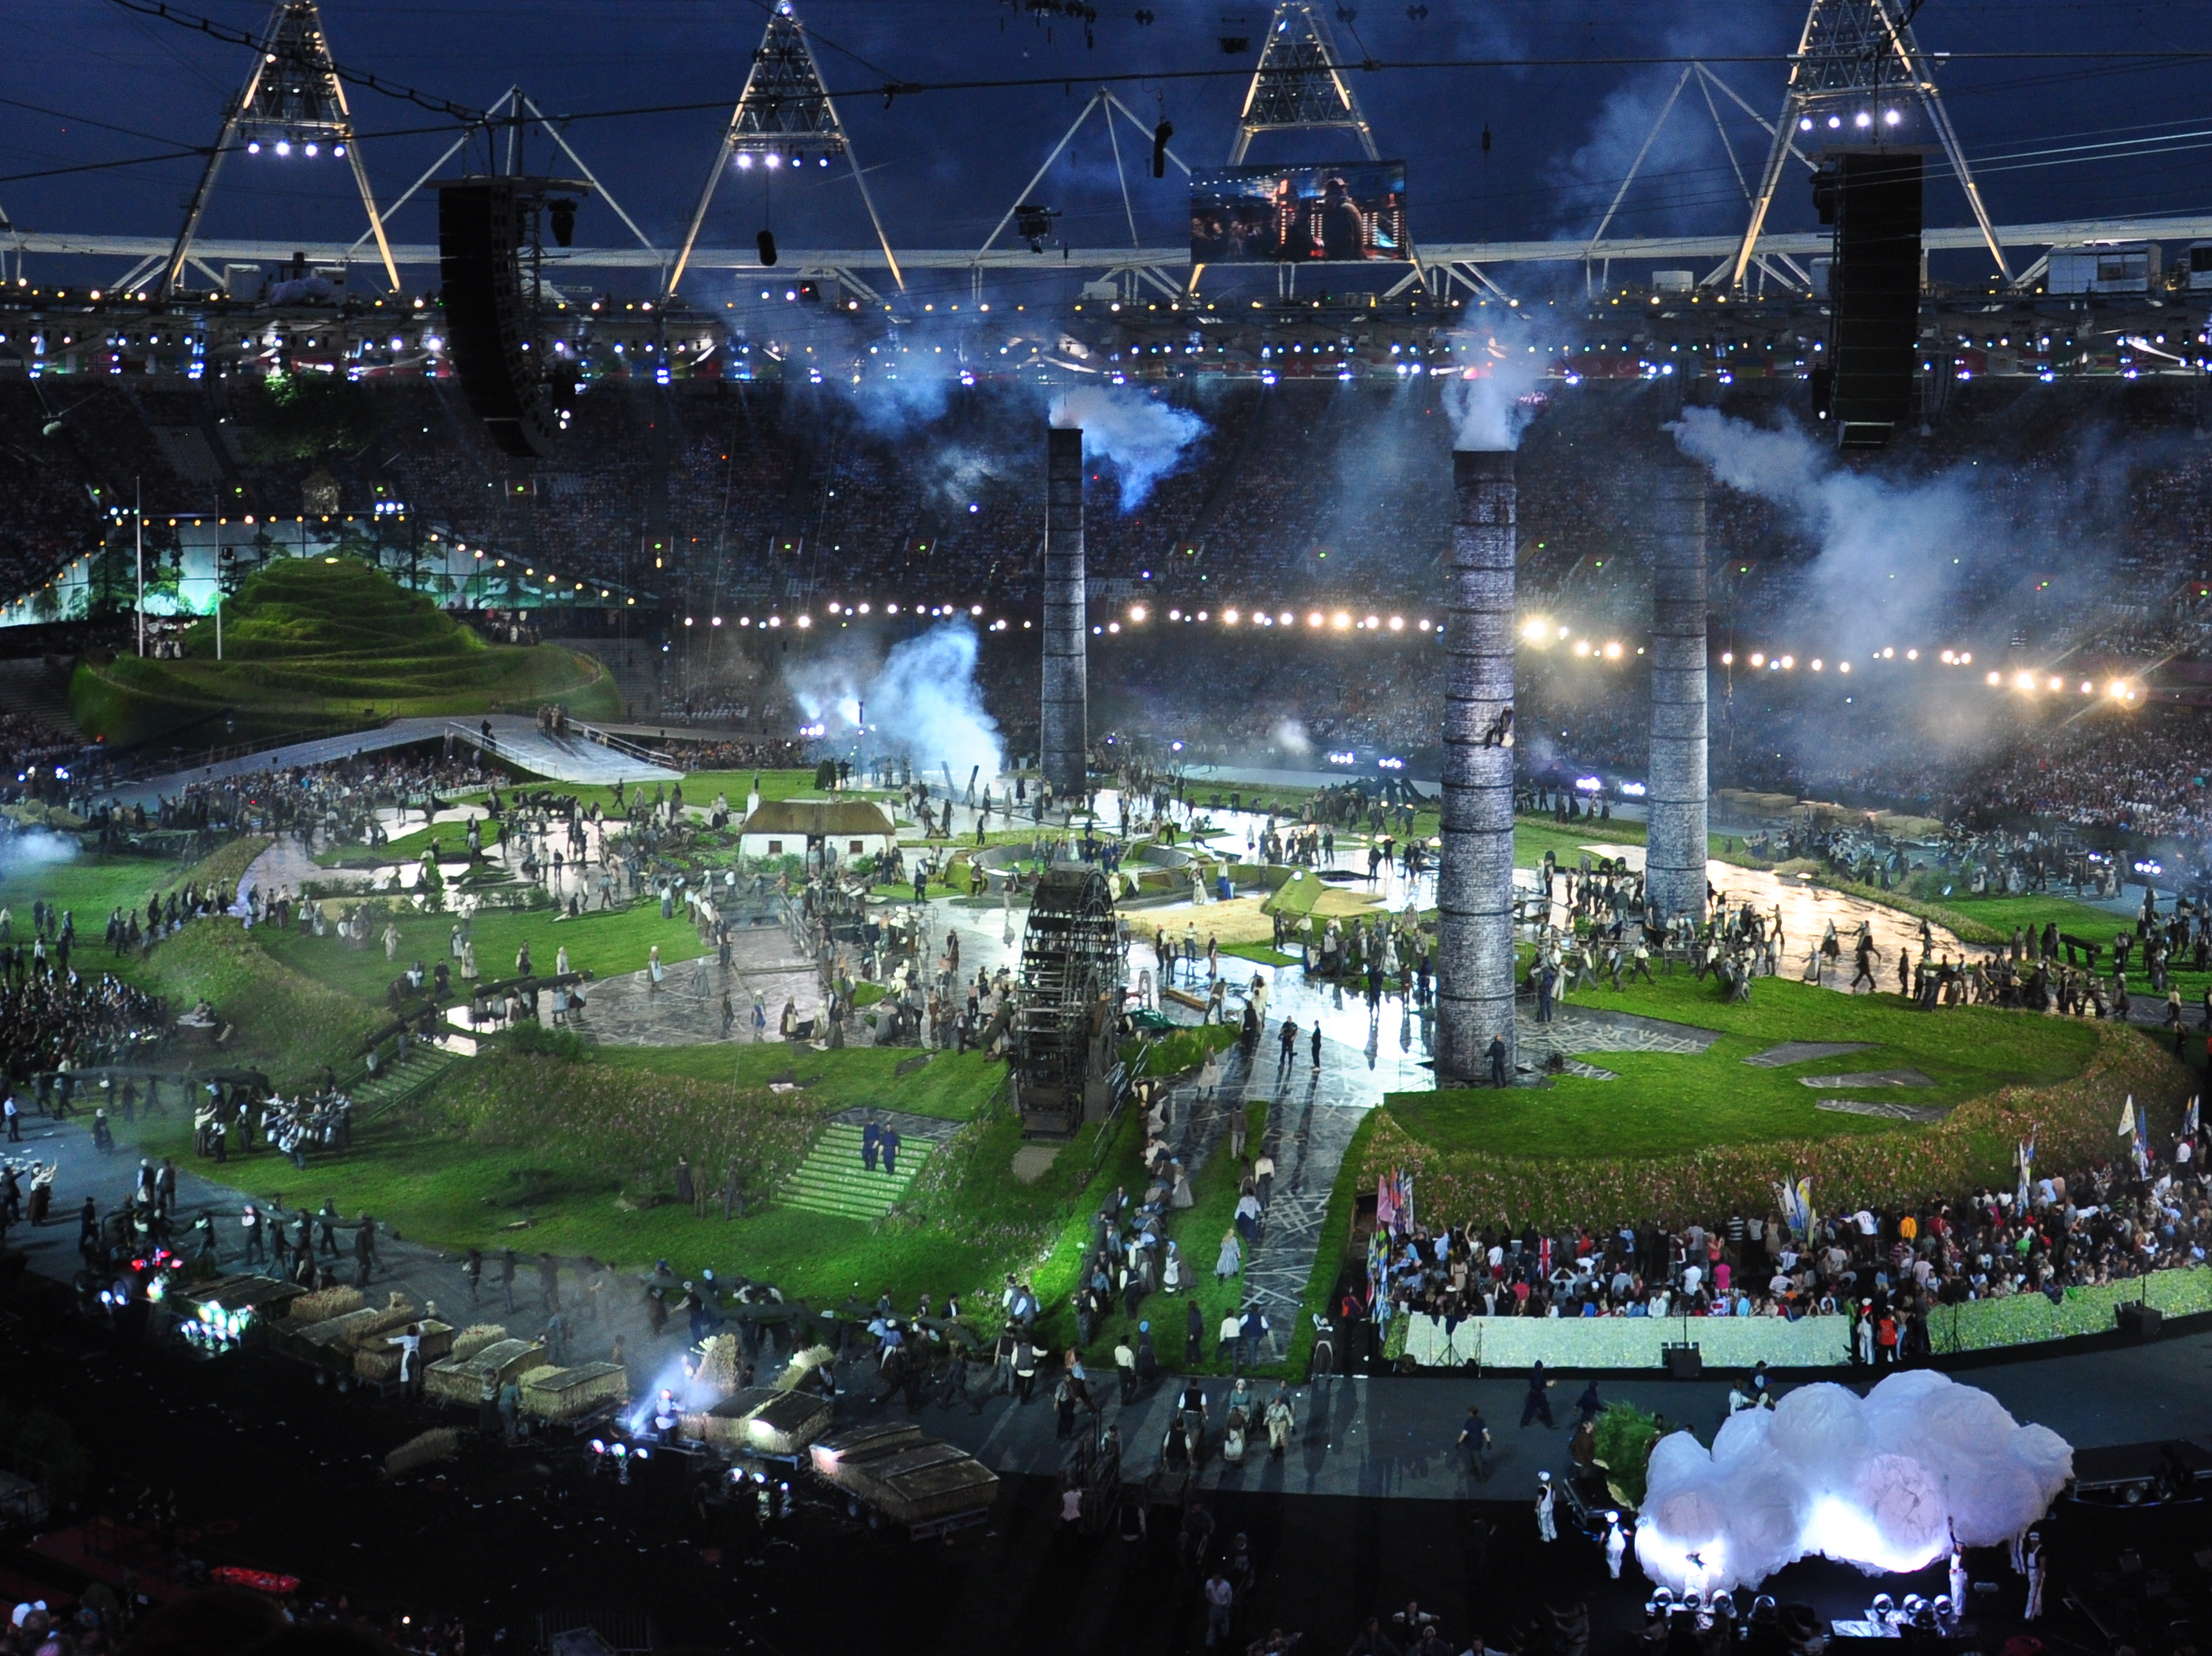 File 2012 Summer Olympics Opening Ceremony Industrial